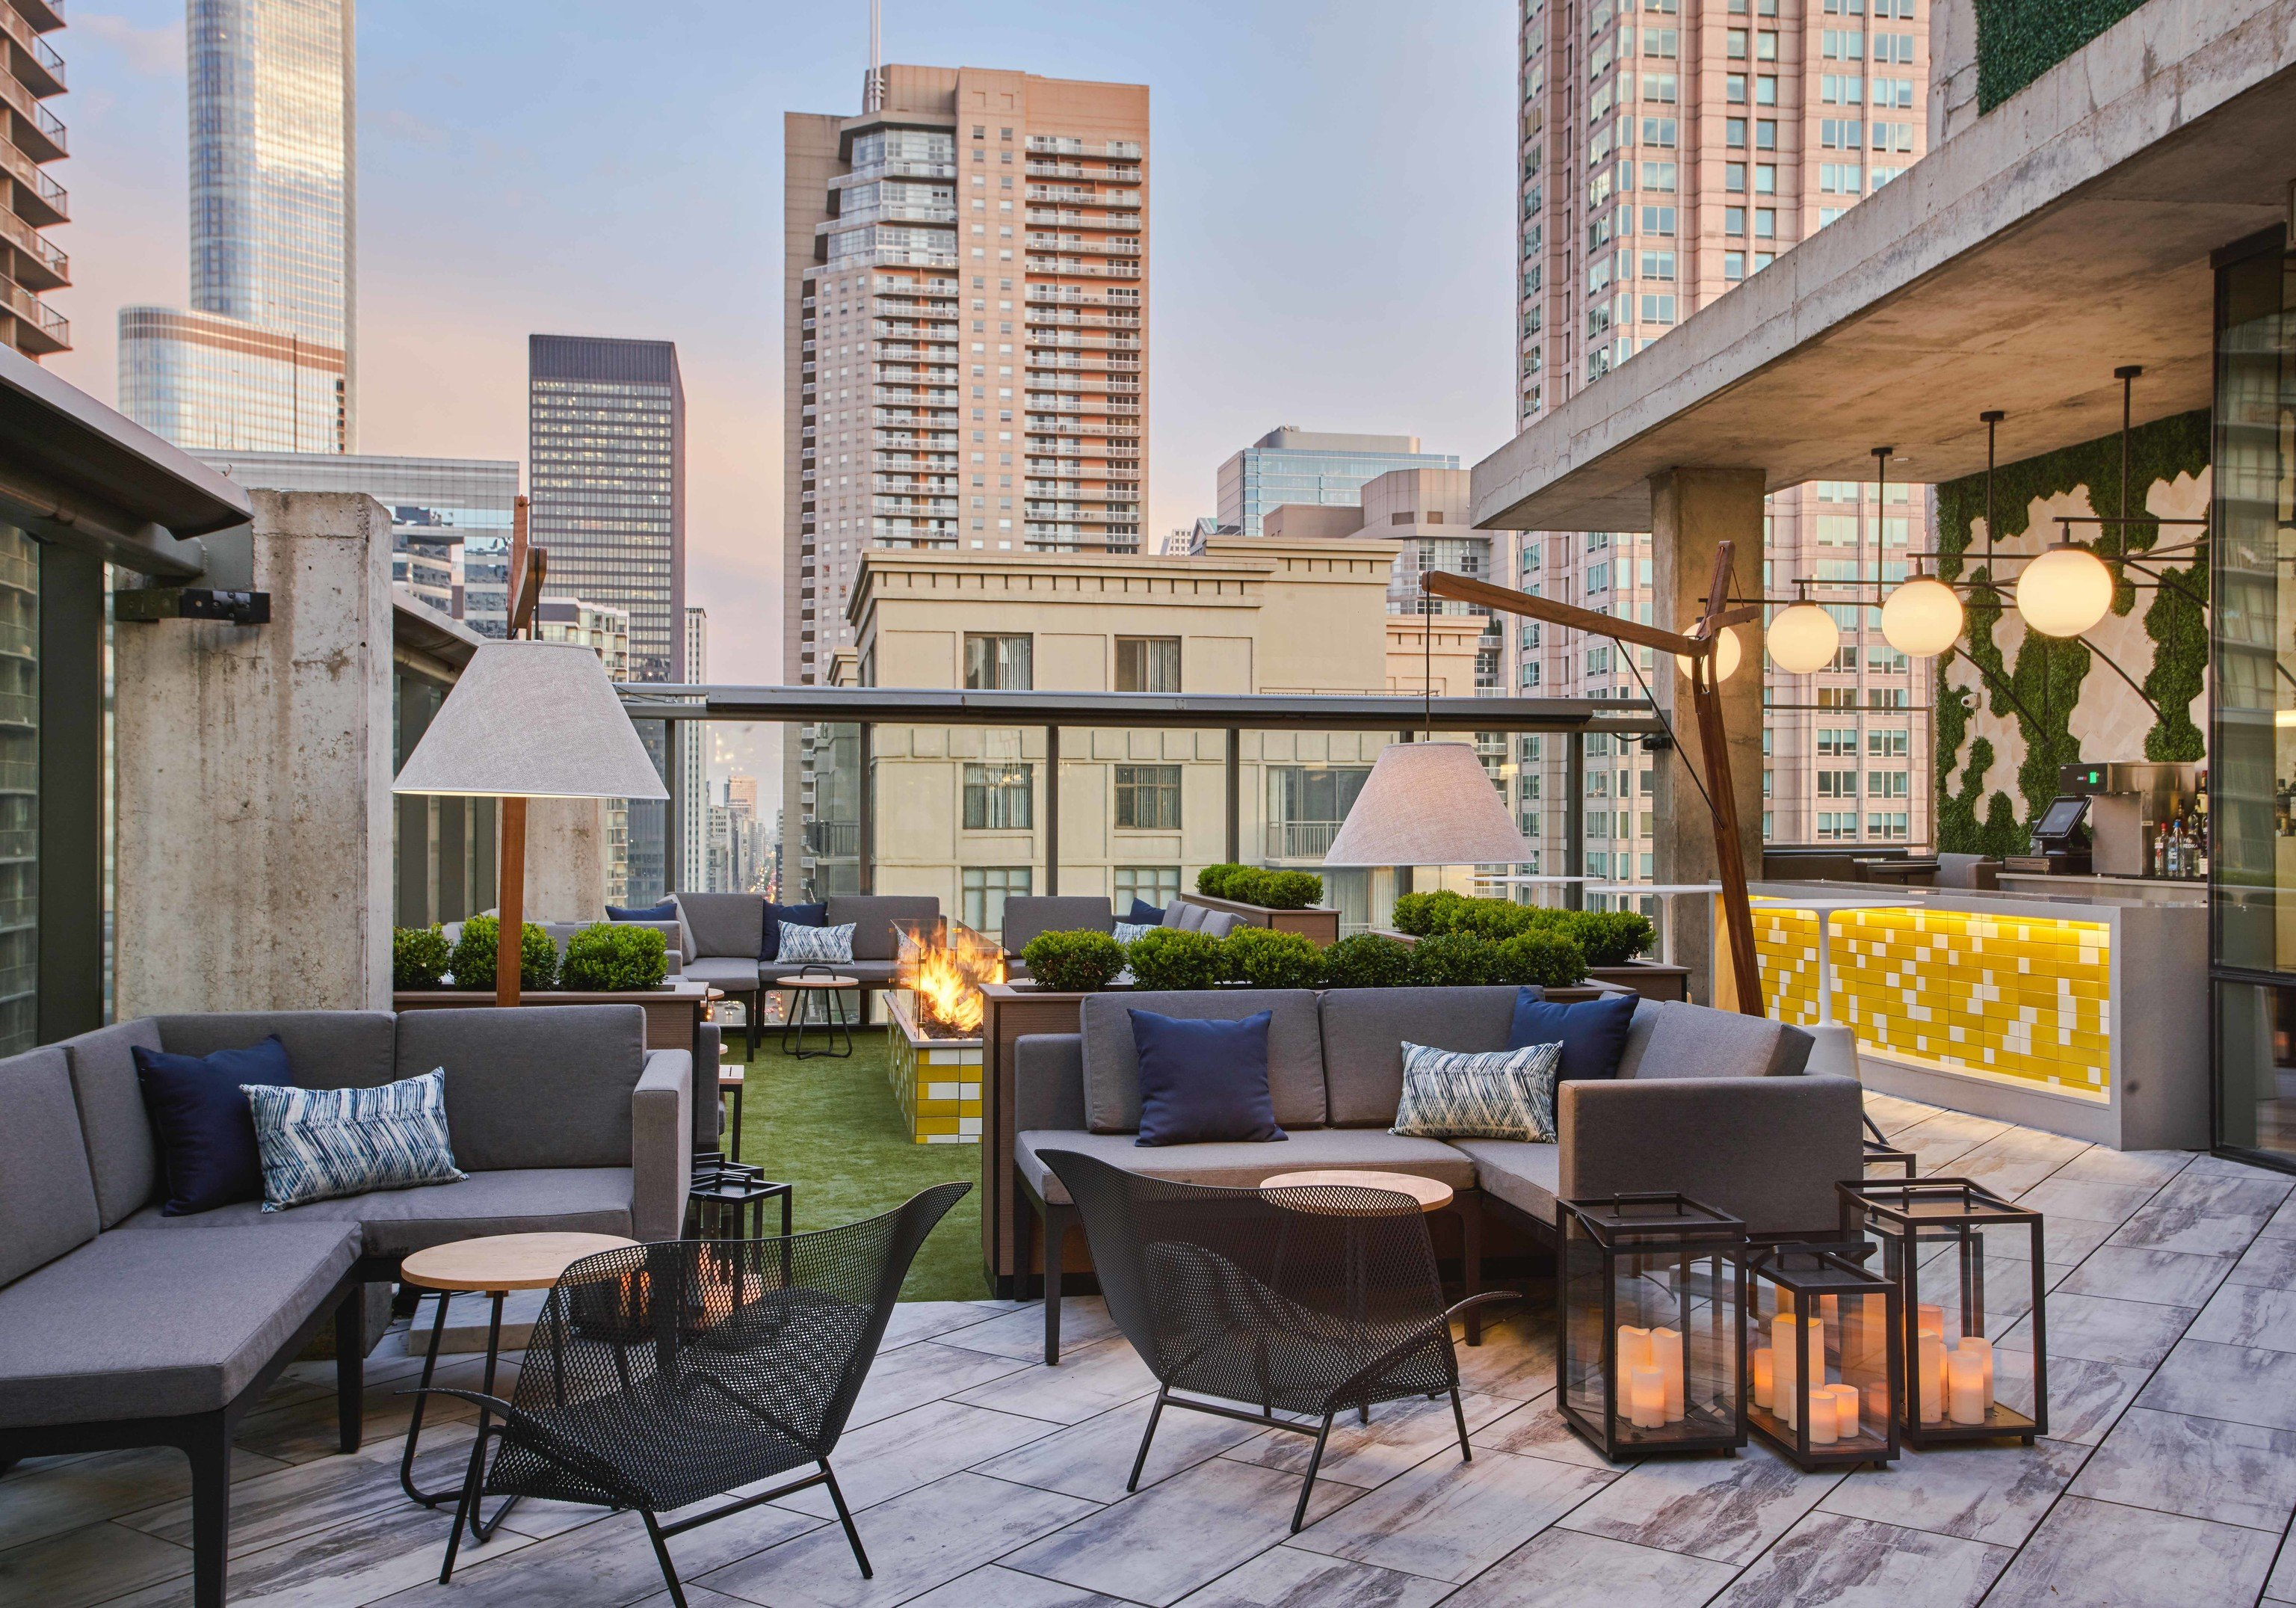 Arts + Culture Food + Drink Hotels Weekend Getaways building outdoor mixed use Patio furniture real estate interior design apartment outdoor structure roof living room table Balcony condominium penthouse apartment window Courtyard backyard interior designer area